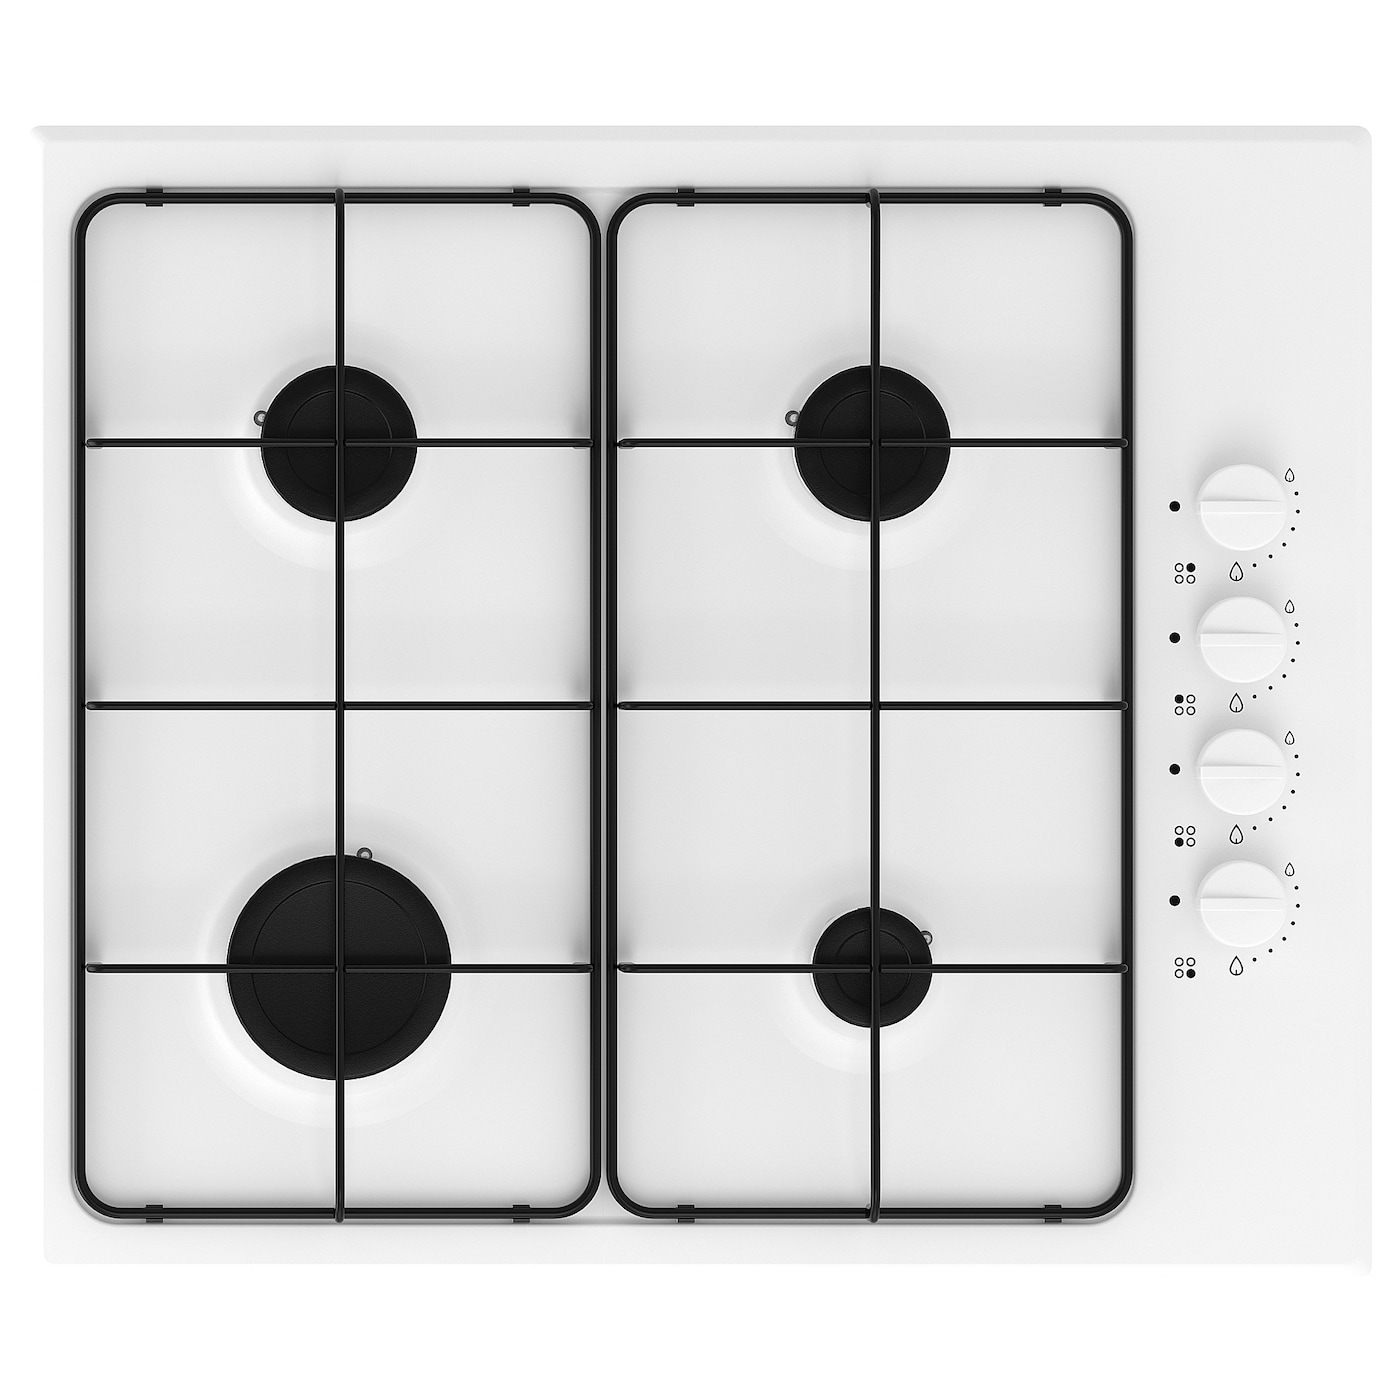 IKEA LAGAN gas hob Electric ignition by using the push-and-turn knob.